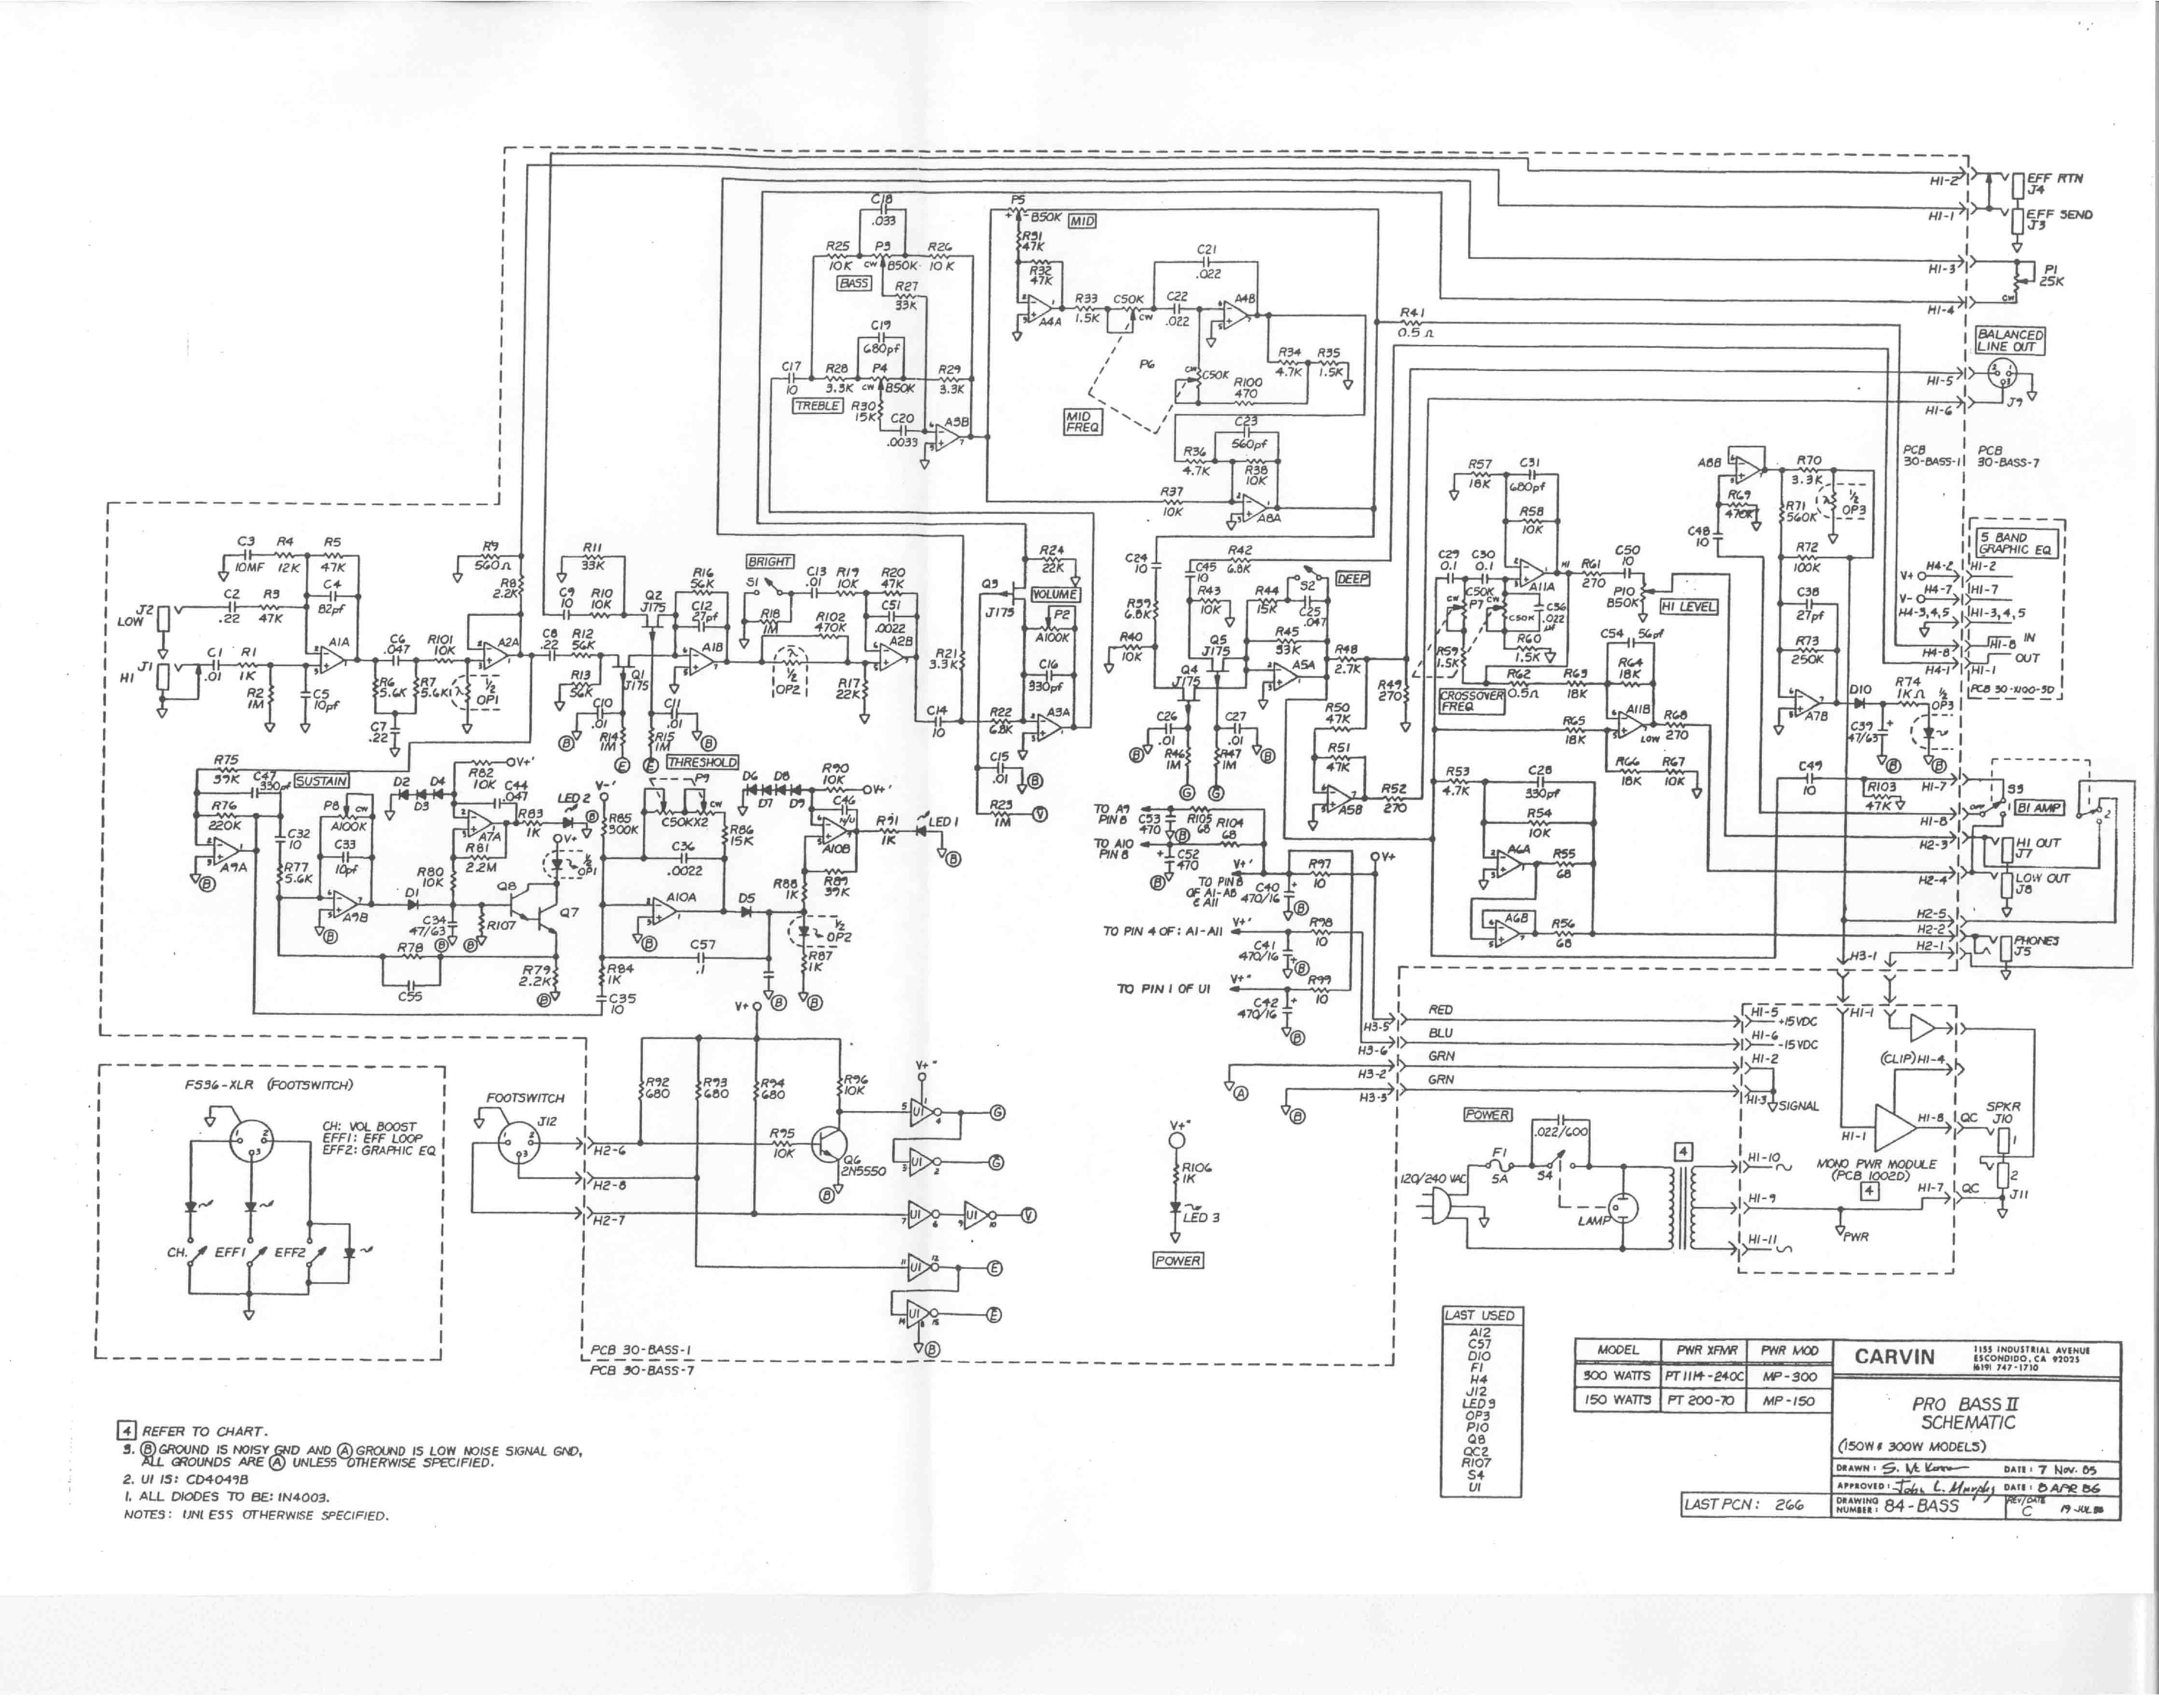 ws_2156] yamaha ag 100 wiring diagram free diagram  wigeg pead sospe kargi nedly awni eopsy peted oidei vira mohammedshrine  librar wiring 101